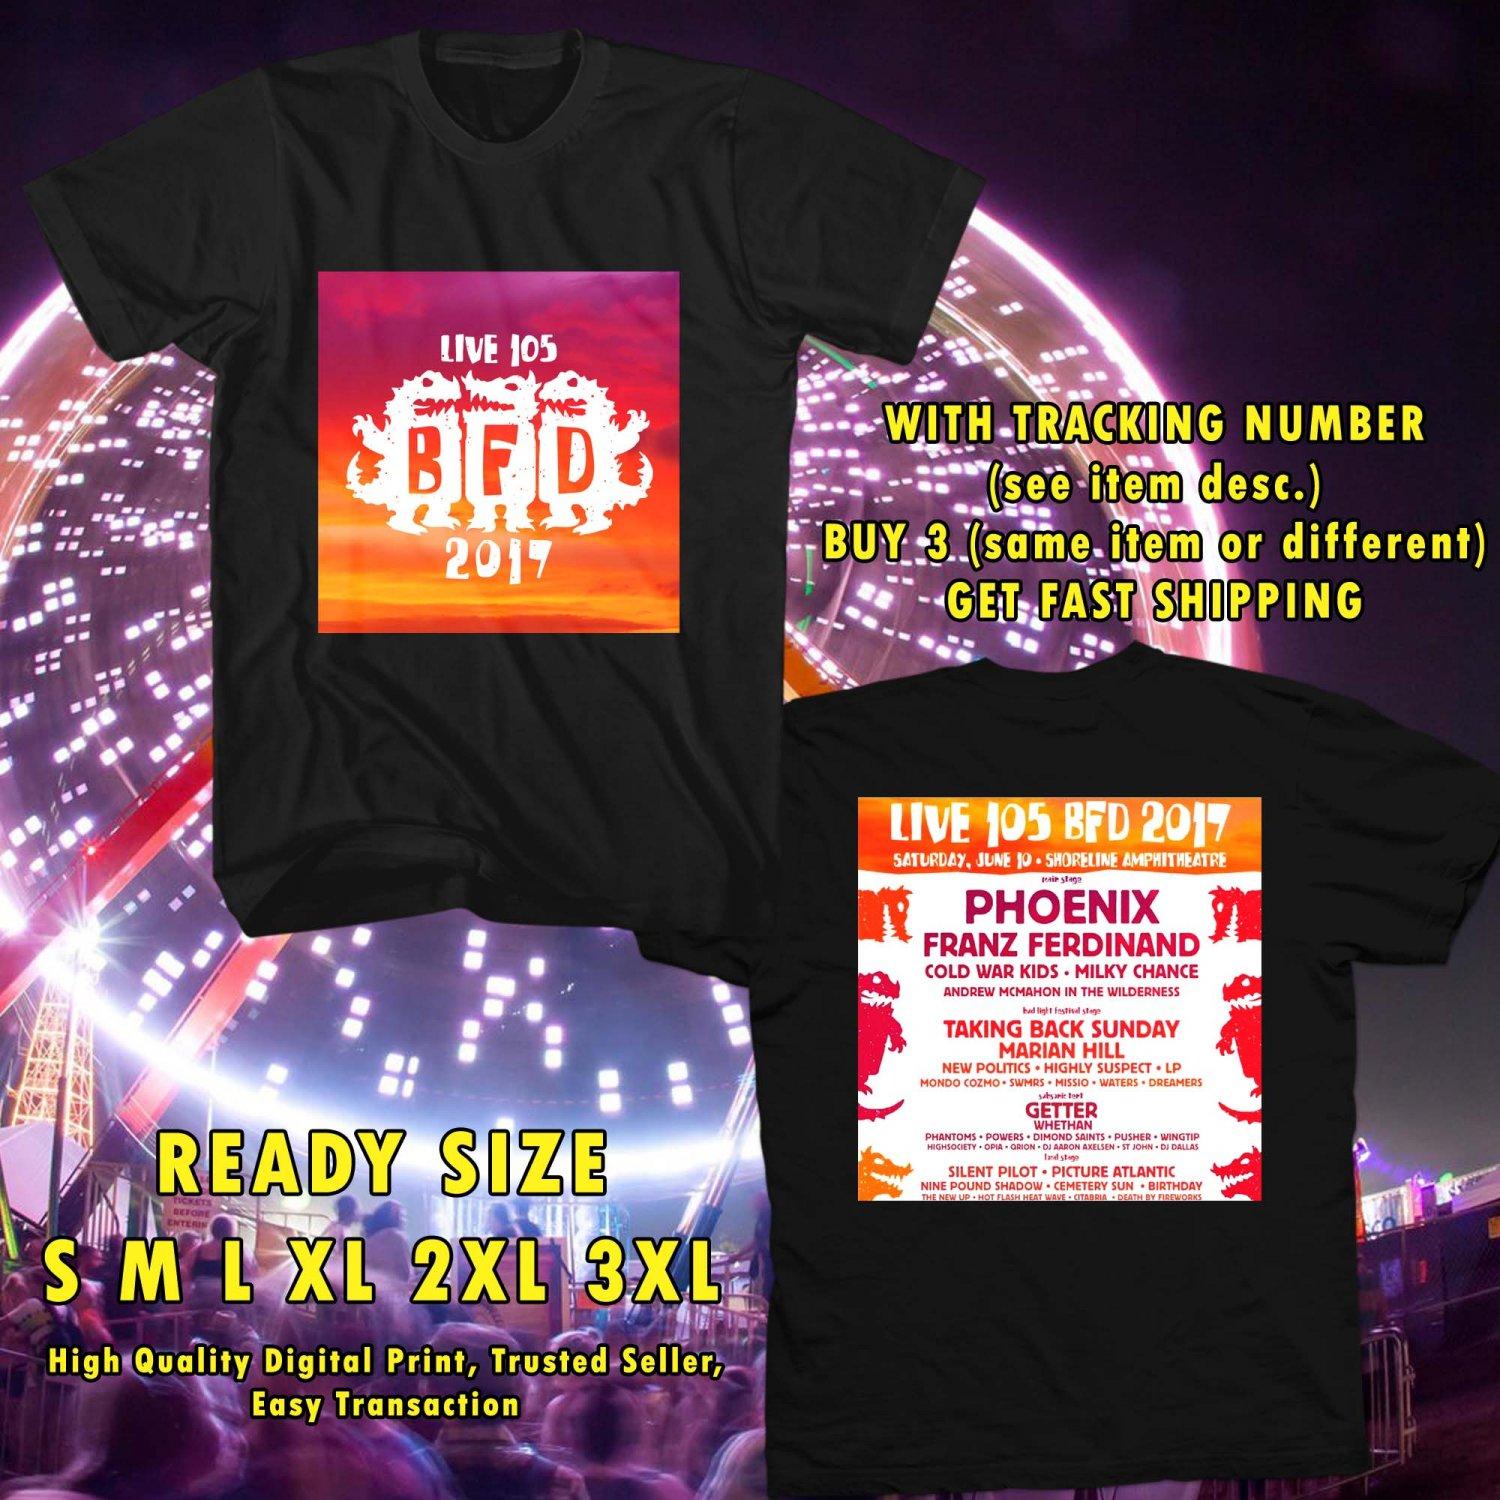 HITS LIVE 105'S BFD FESTIVAL JUN 2017 BLACK TEE'S 2SIDE MAN WOMEN ASTR 1`12